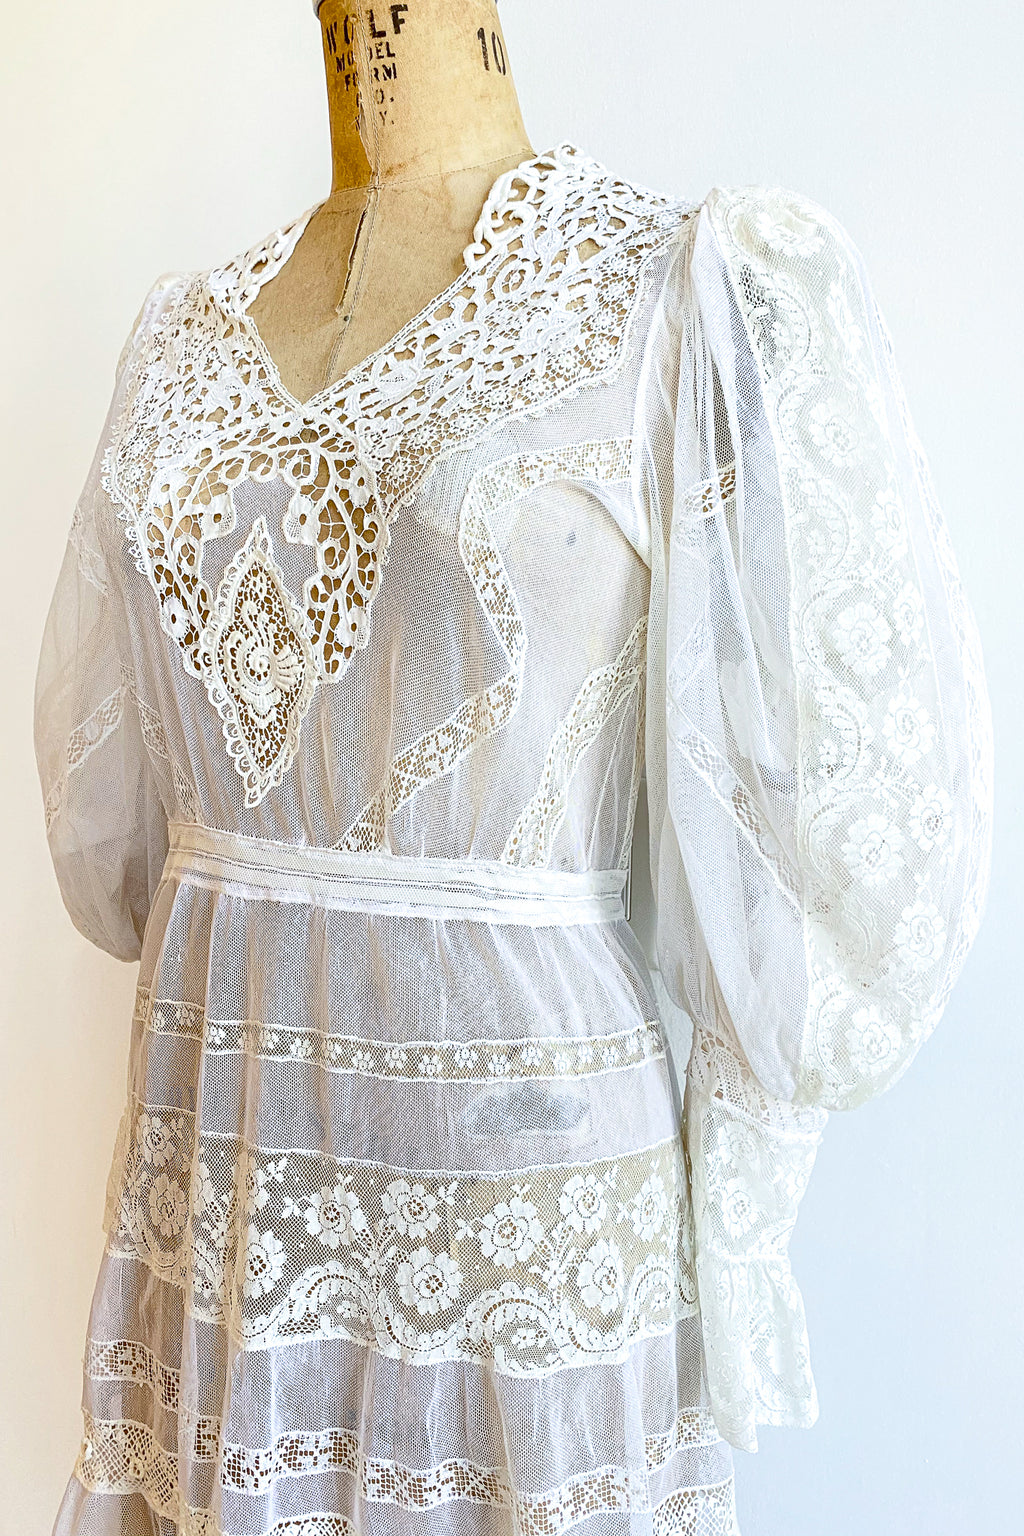 Vintage 1930s Sheer Lace Balloon Sleeve Dress Wedding Bridal on Dressform Angle Crop at Recess LA